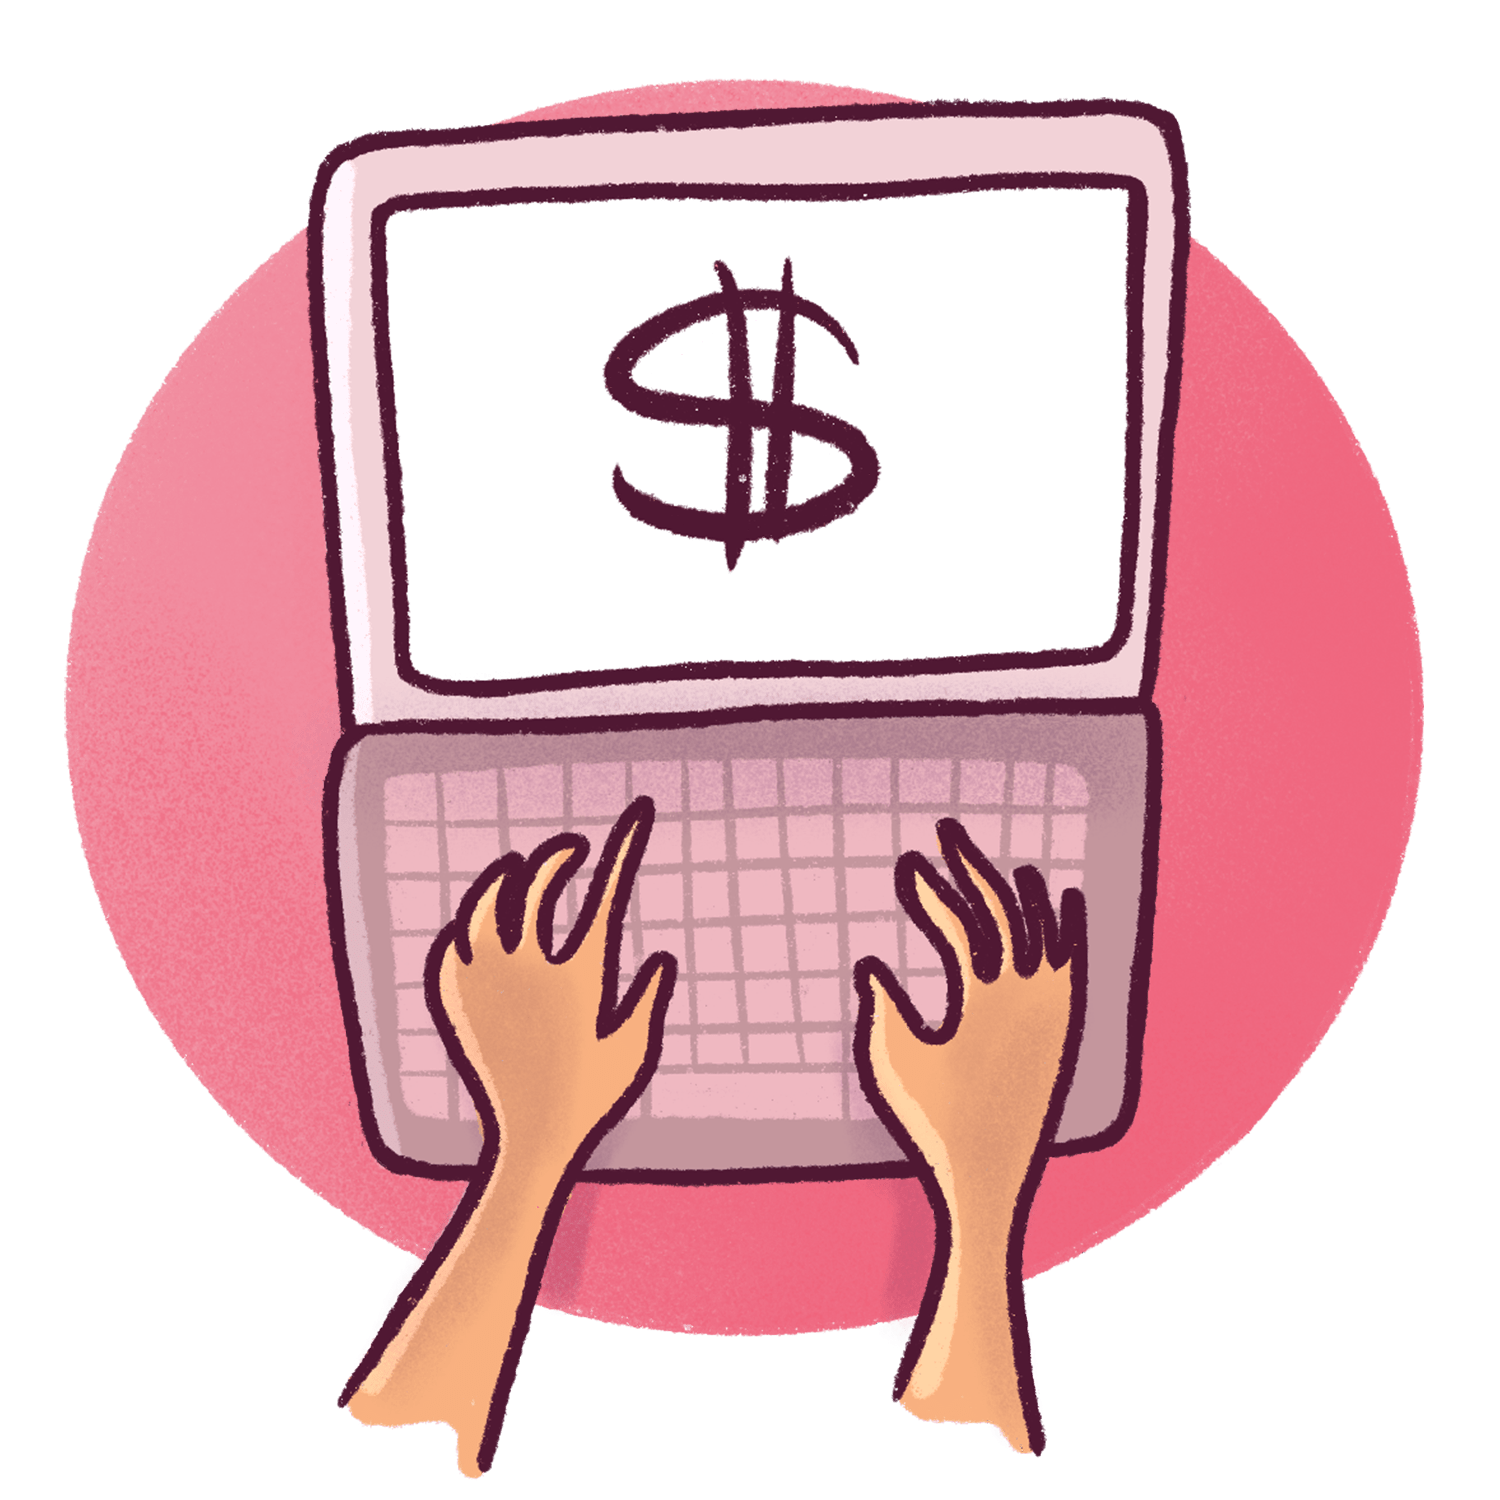 This 7 day email course will teach you to start a blog that is profitable from scratch. You will understand the fundamentals of blogging like choosing a profitable niche, identifying your target audience, learning how to write viral blog posts and more!